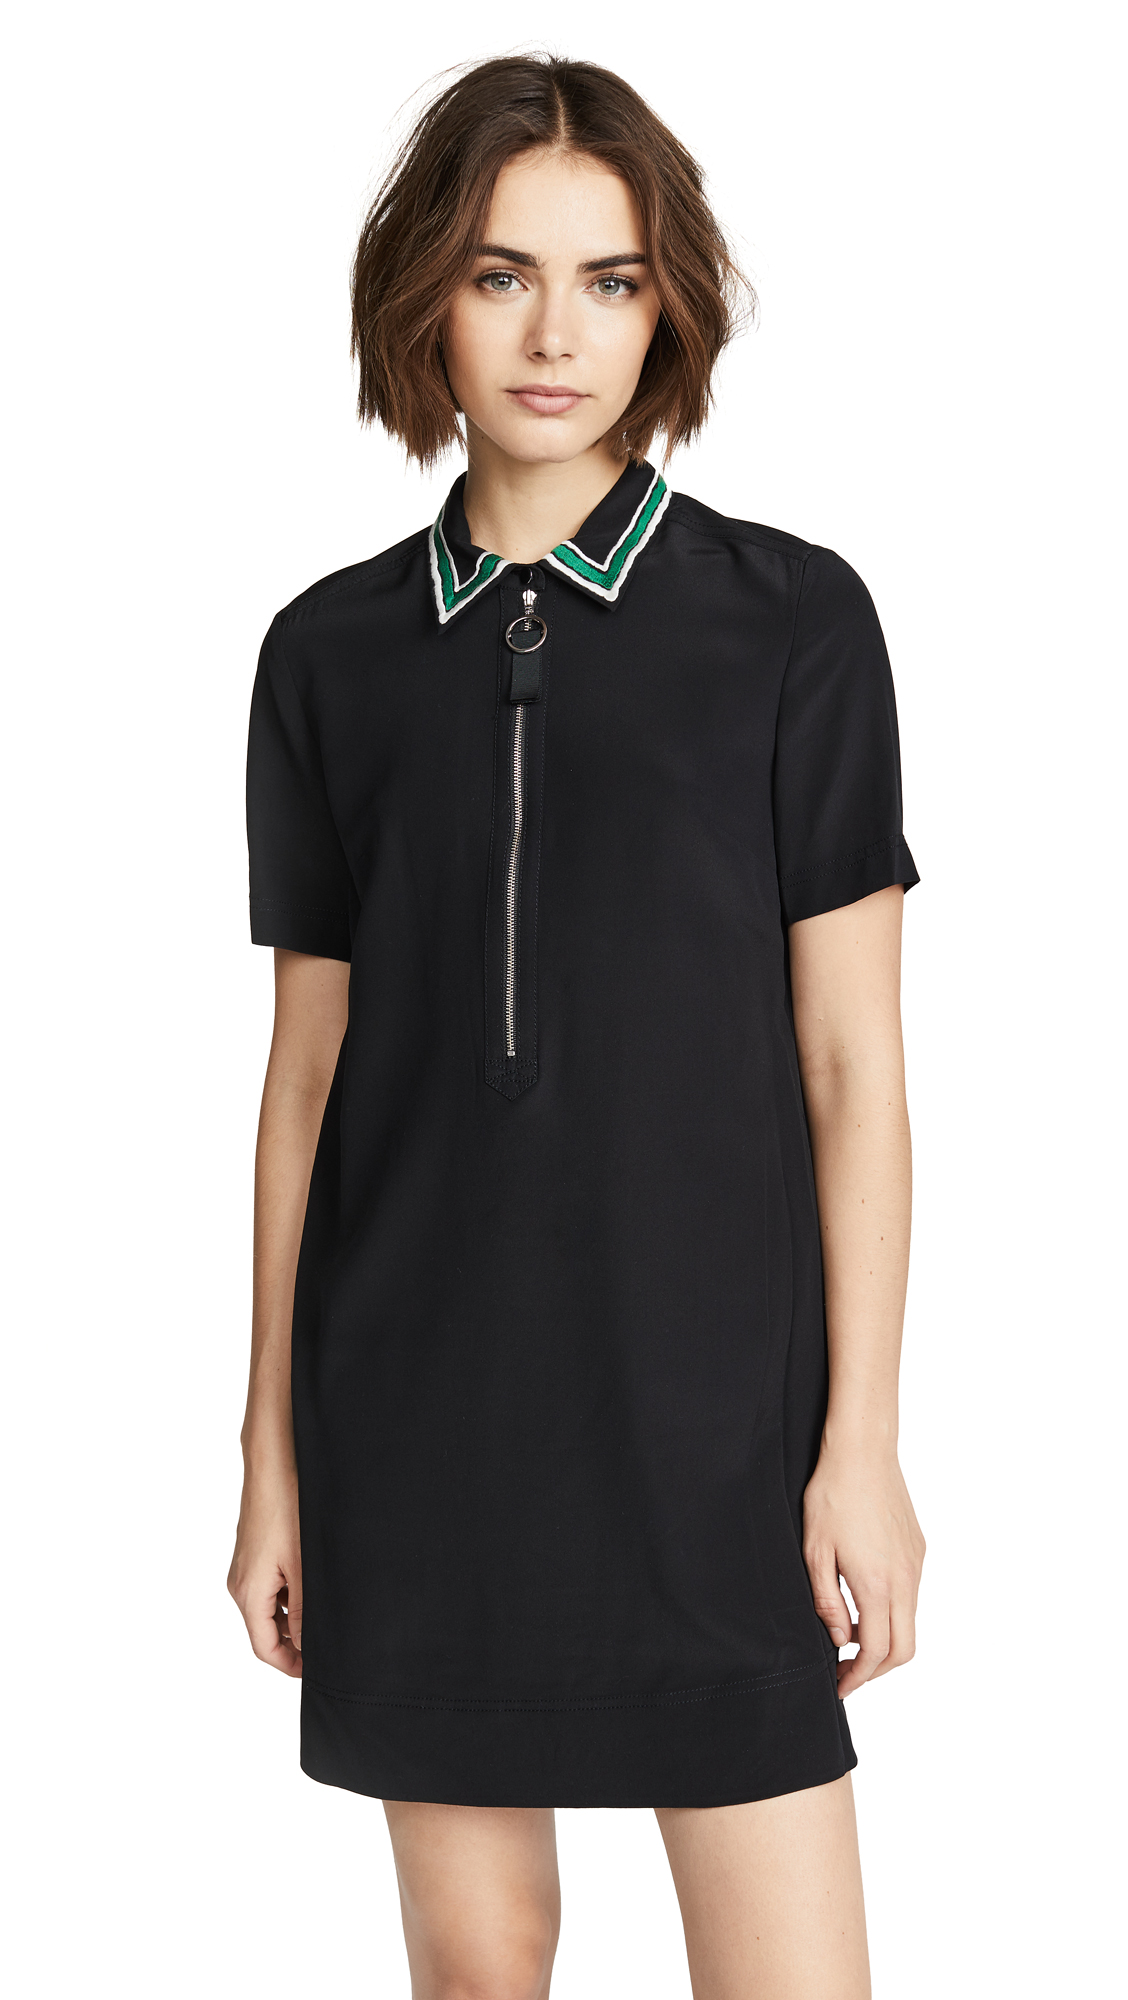 ZIP DRESS WITH EMBROIDERED COLLAR